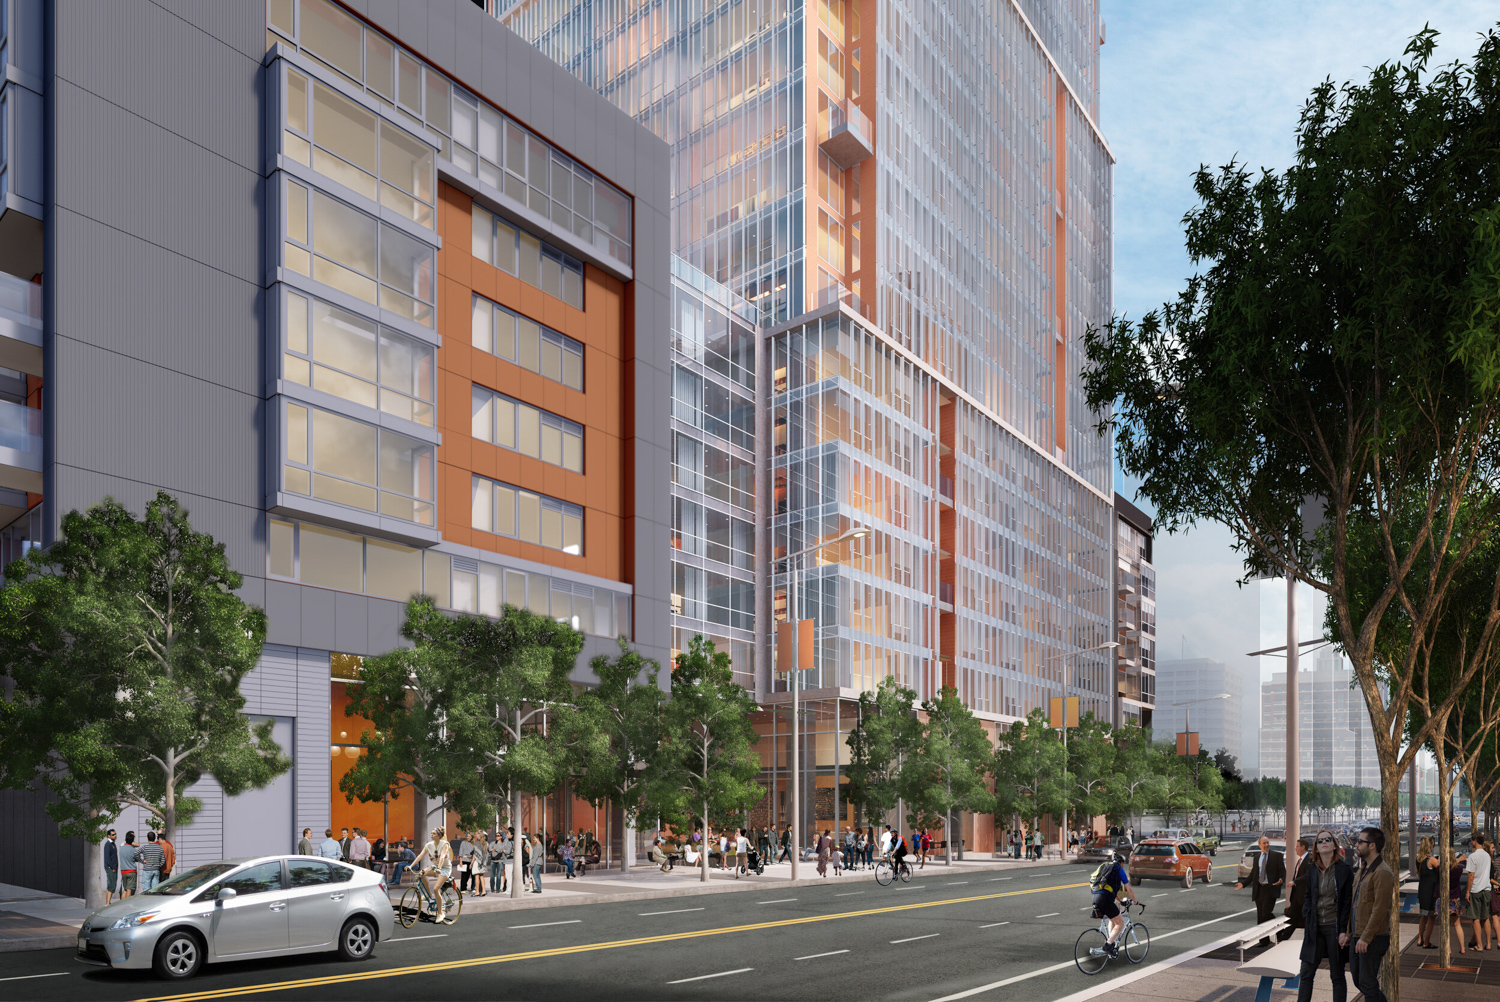 500 Folsom Street street view facade, rendering by Fougeron Architecture